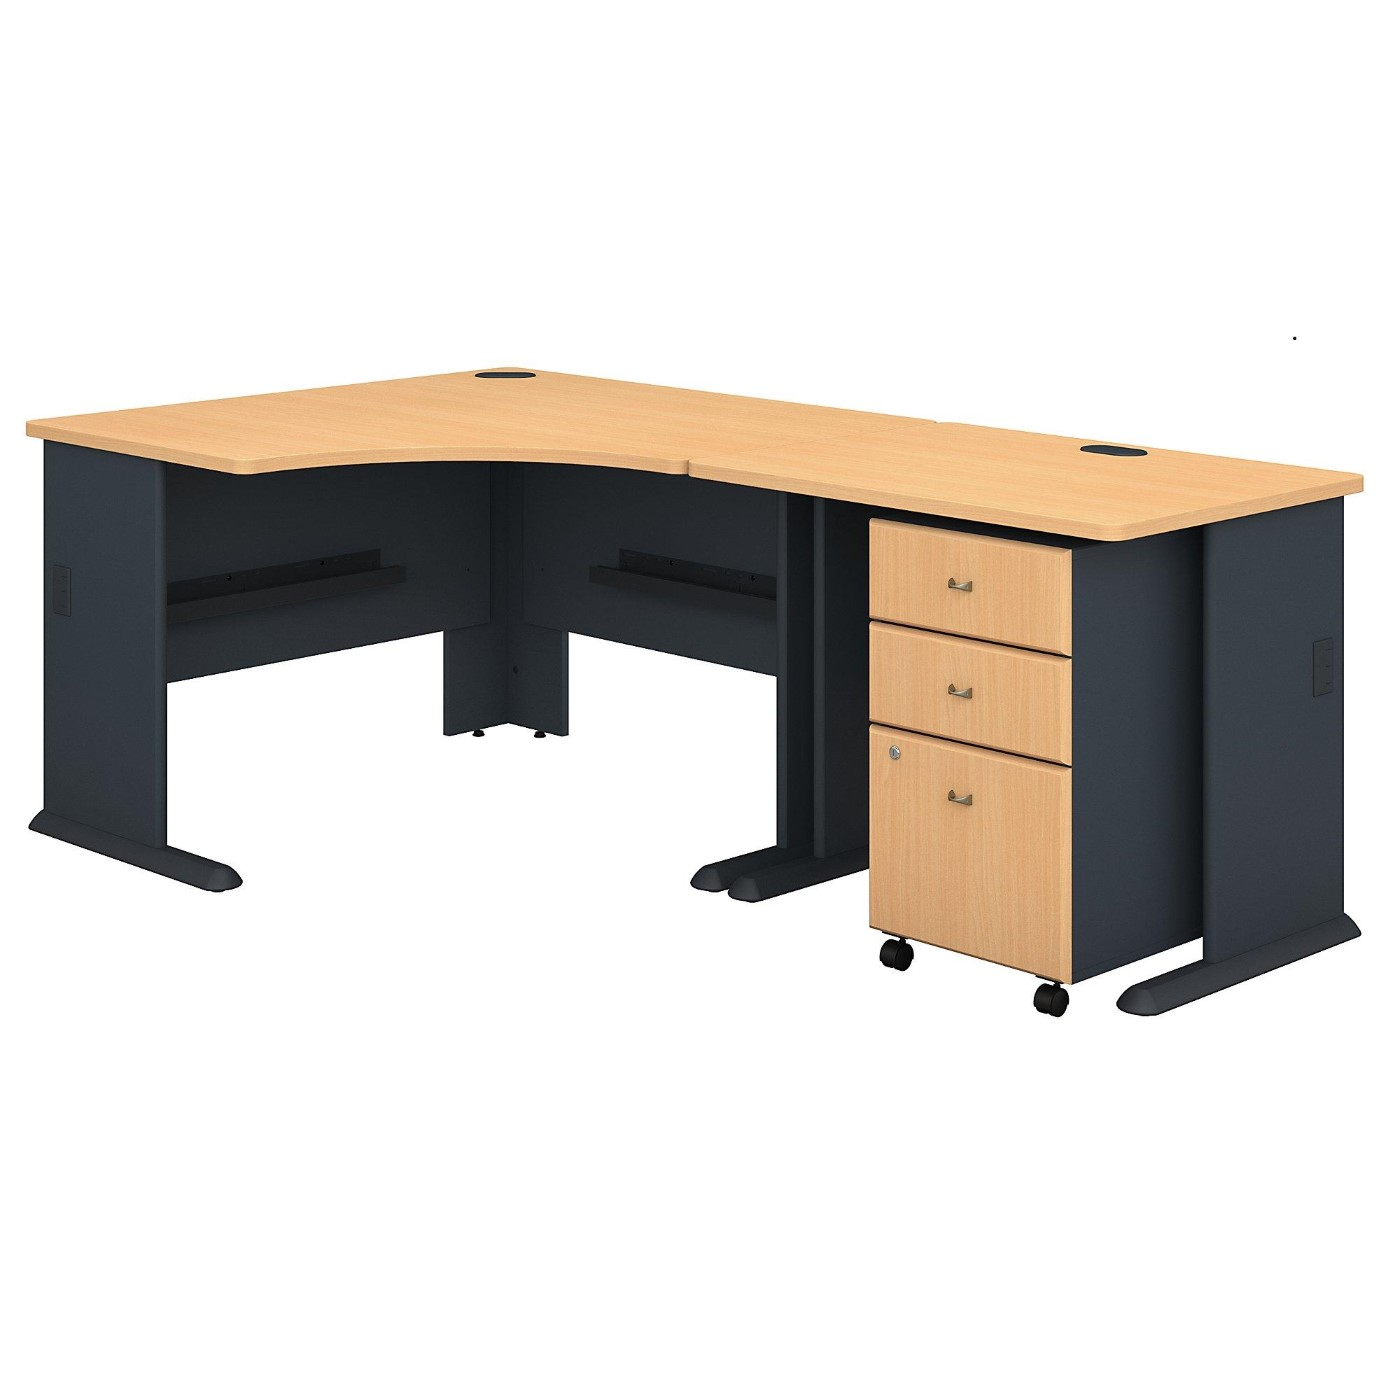 <font color=#c60><b>BUSH BUSINESS FURNITURE SERIES A 48W CORNER DESK WITH 36W RETURN AND MOBILE FILE CABINET #EH-SRA005BESU. FREE SHIPPING</font></b></font></b>